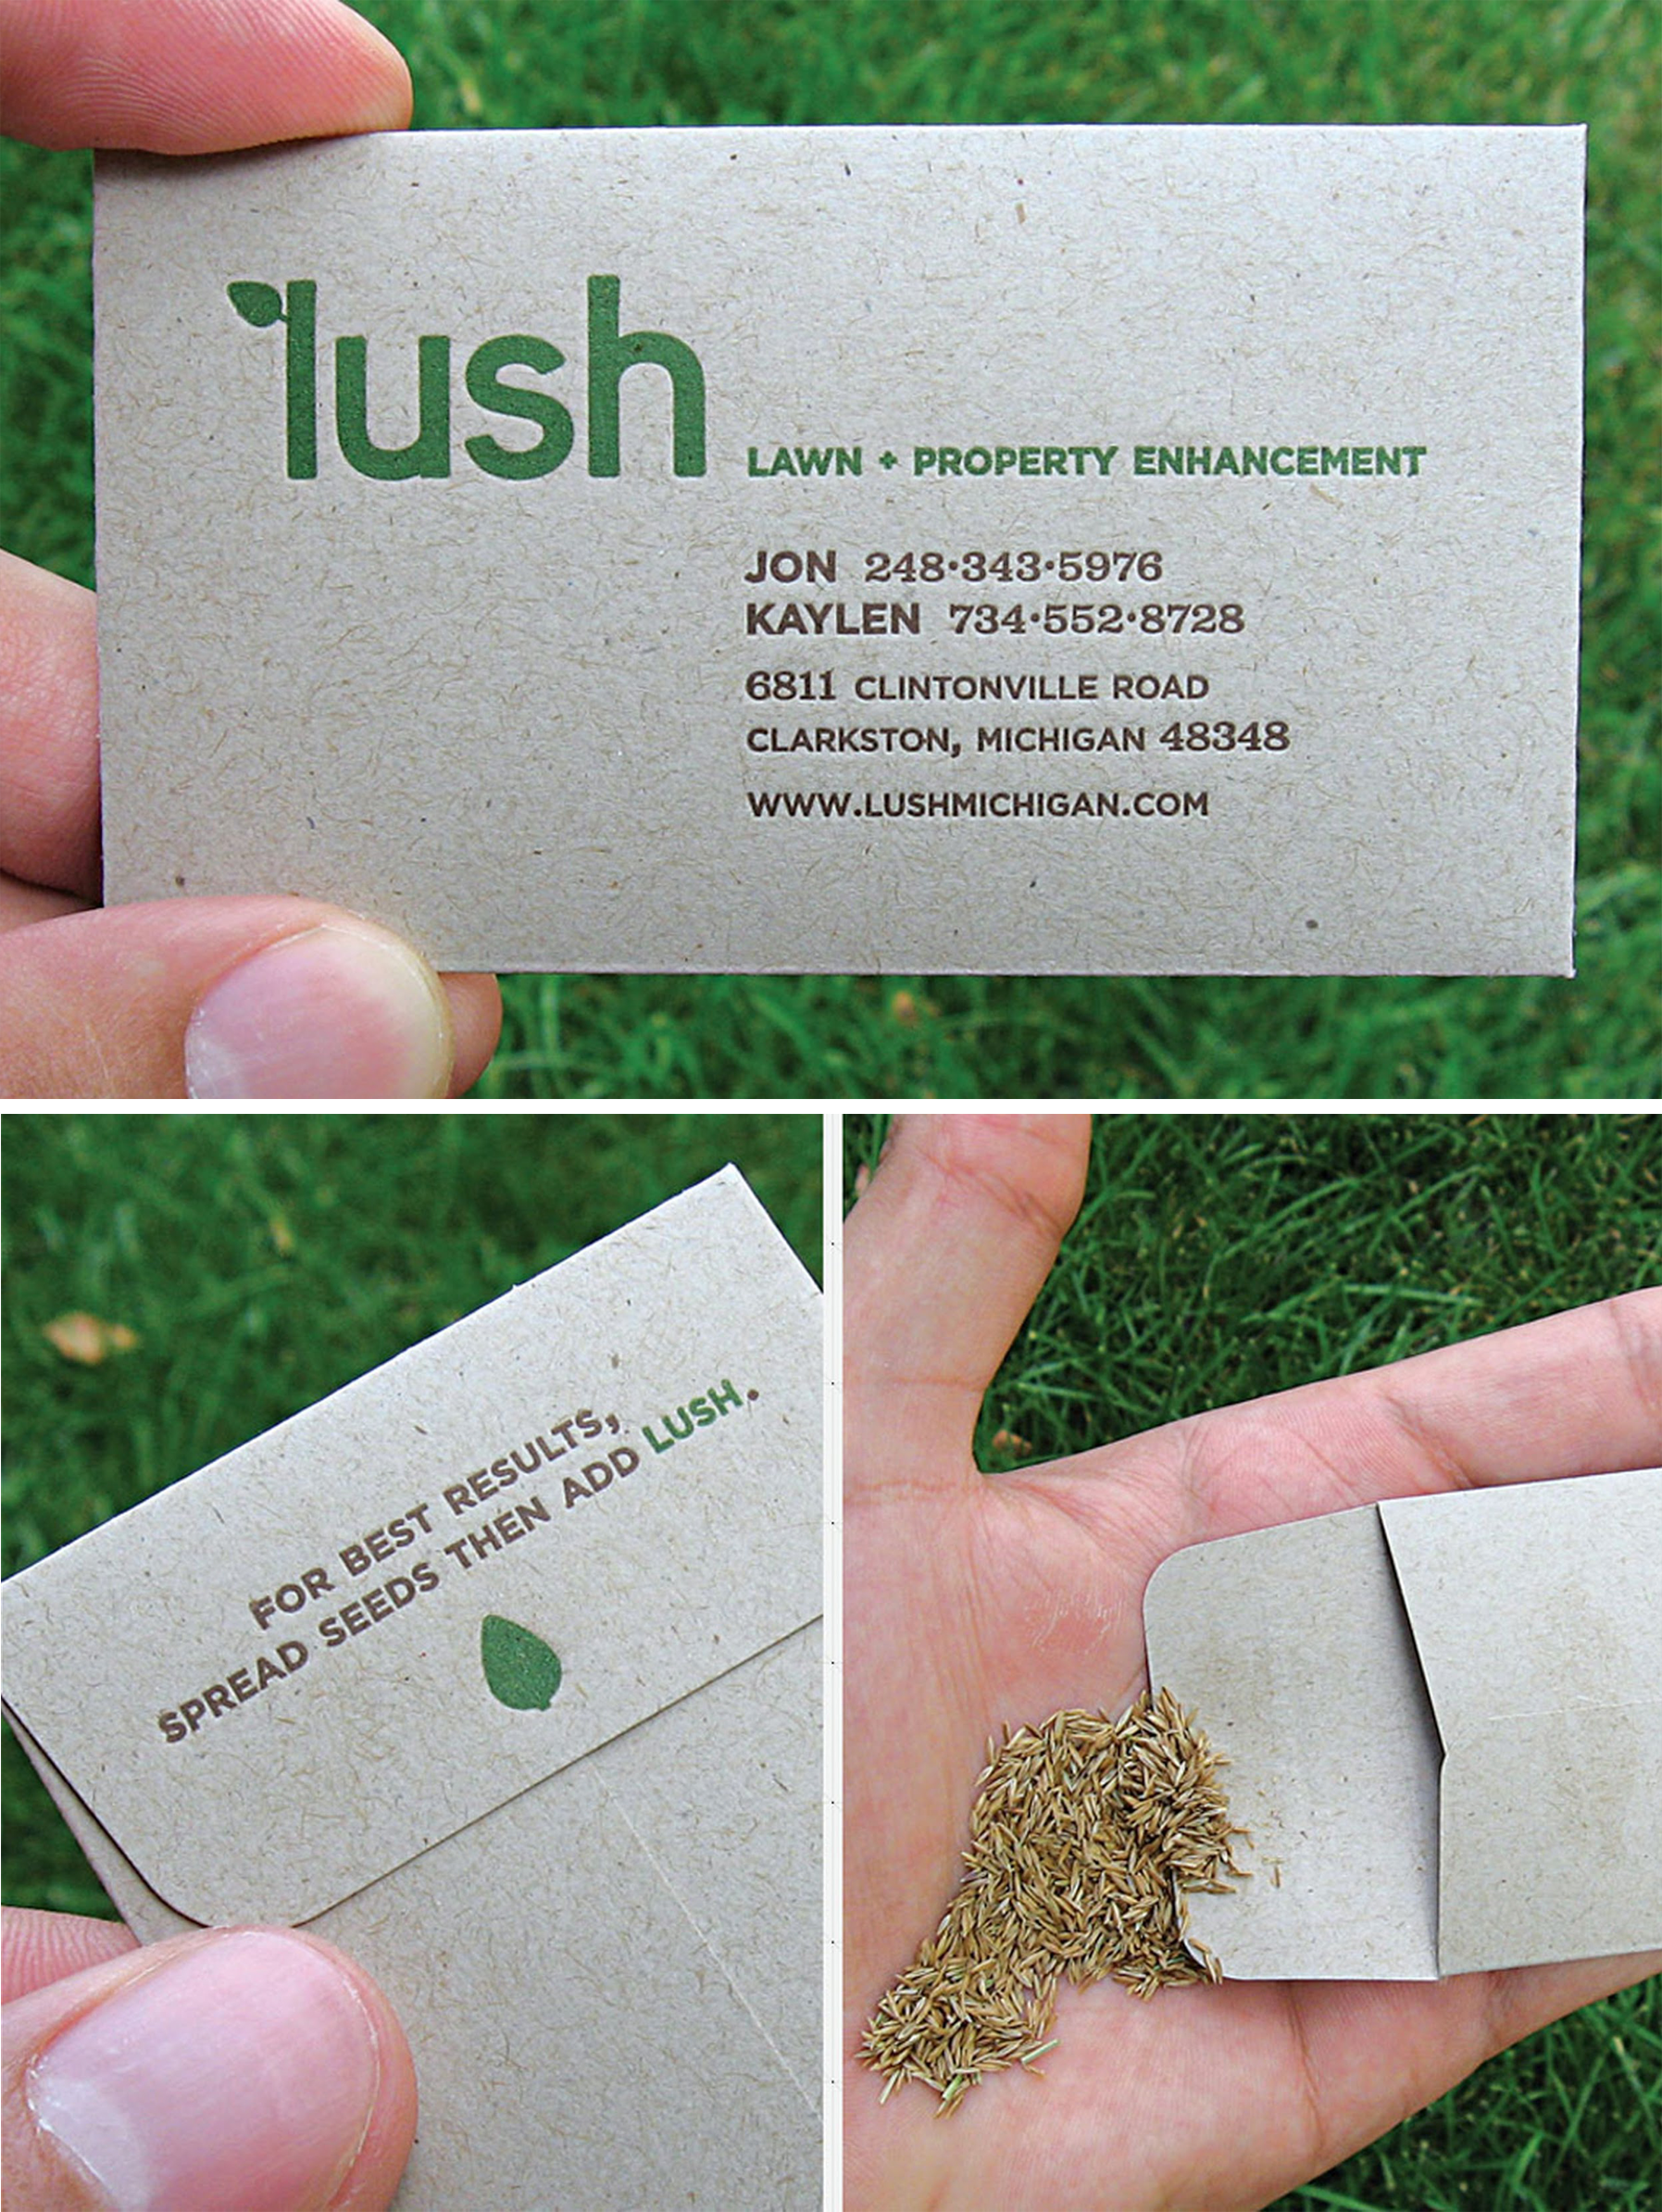 an example of a guerilla marketing strategy from Lush Lawn